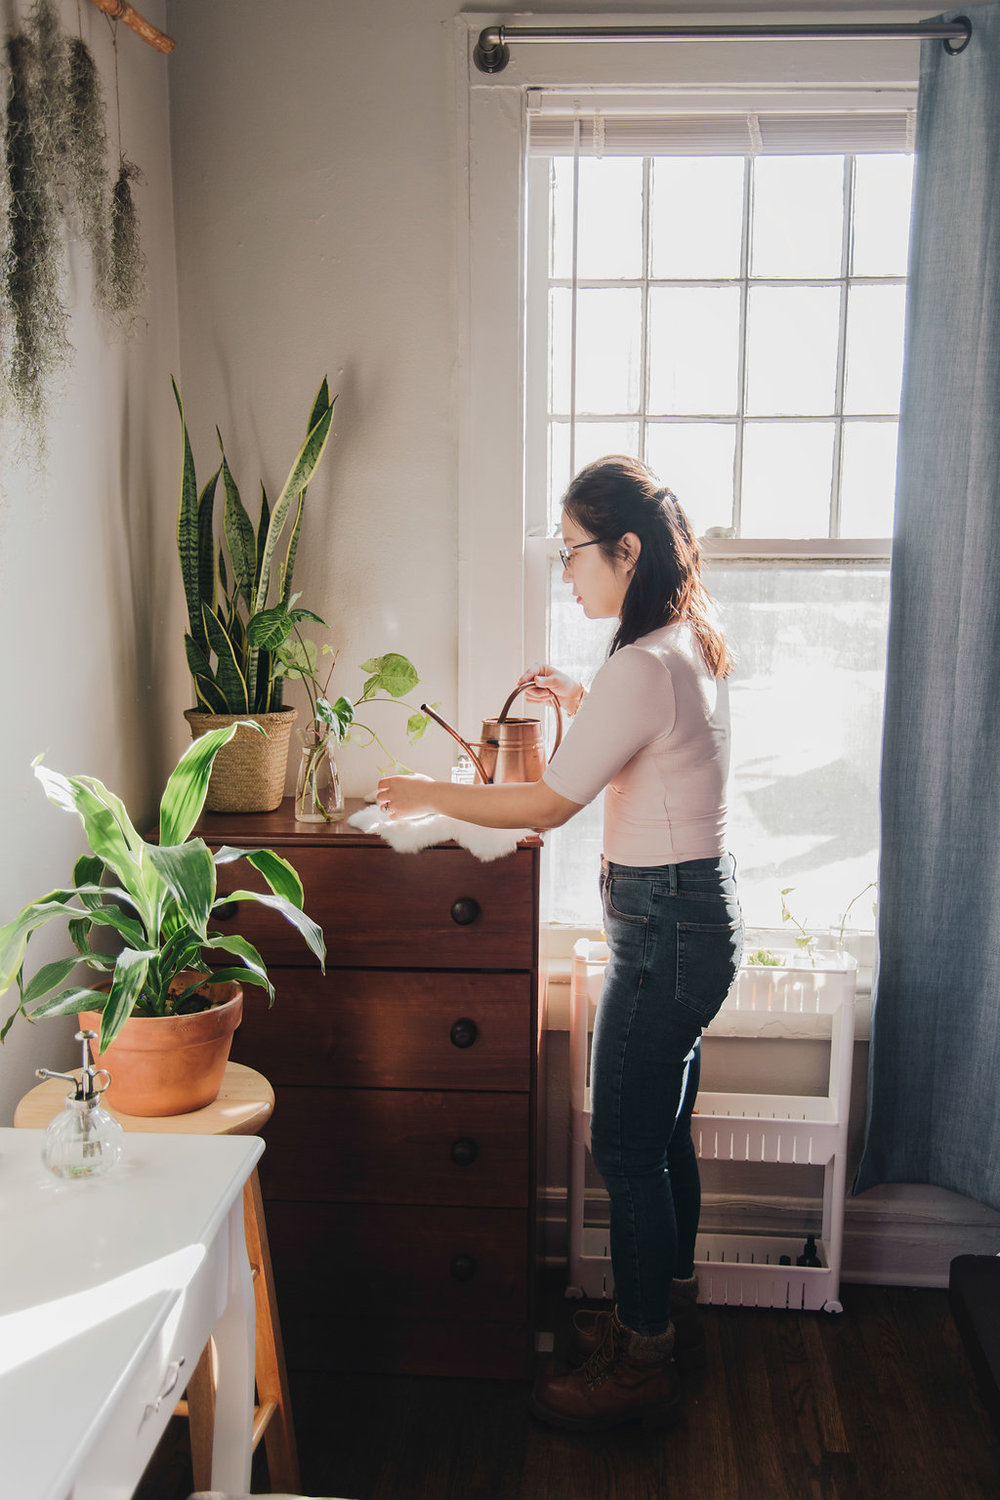 Chuyi's goal is to turn her apartment into a jungle. We feel she's making great progress.